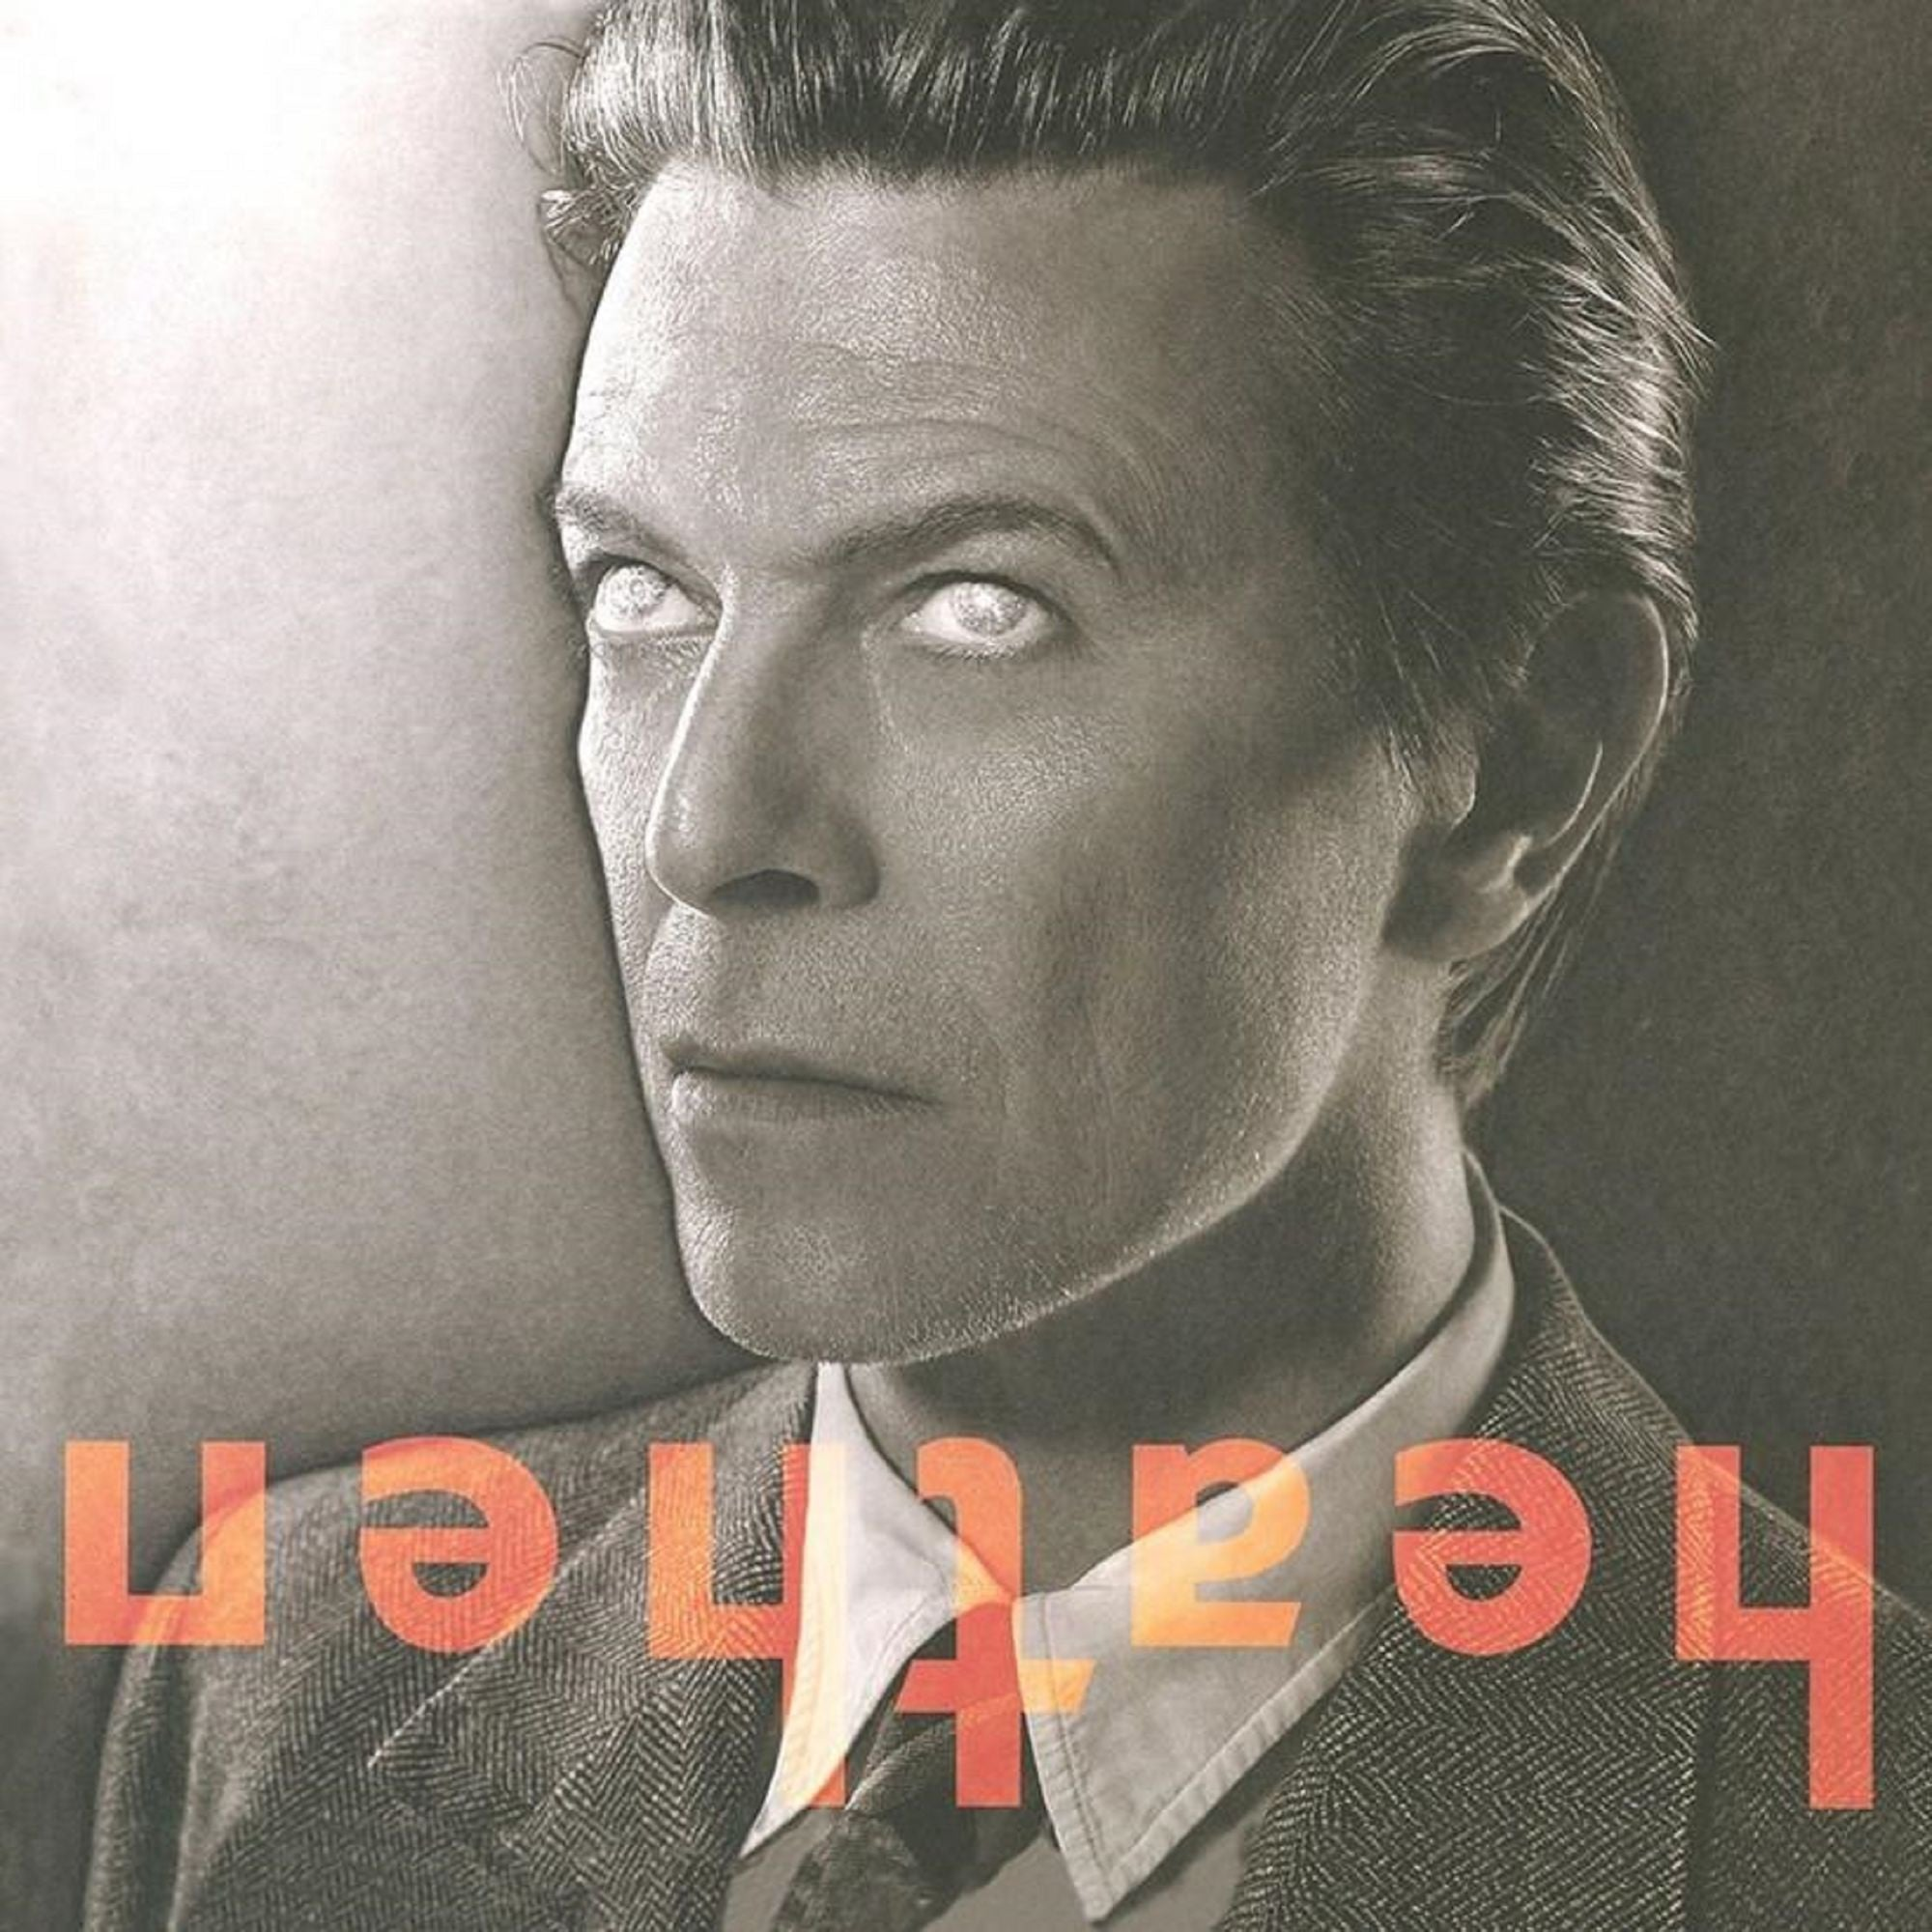 David Bowie - Heathen - New Vinyl Lp 2018 Friday Music Limited Edition 180gram Audiophile Reissue on Red and Orange Vinyl with Tri-Fold Cover - Art Rock